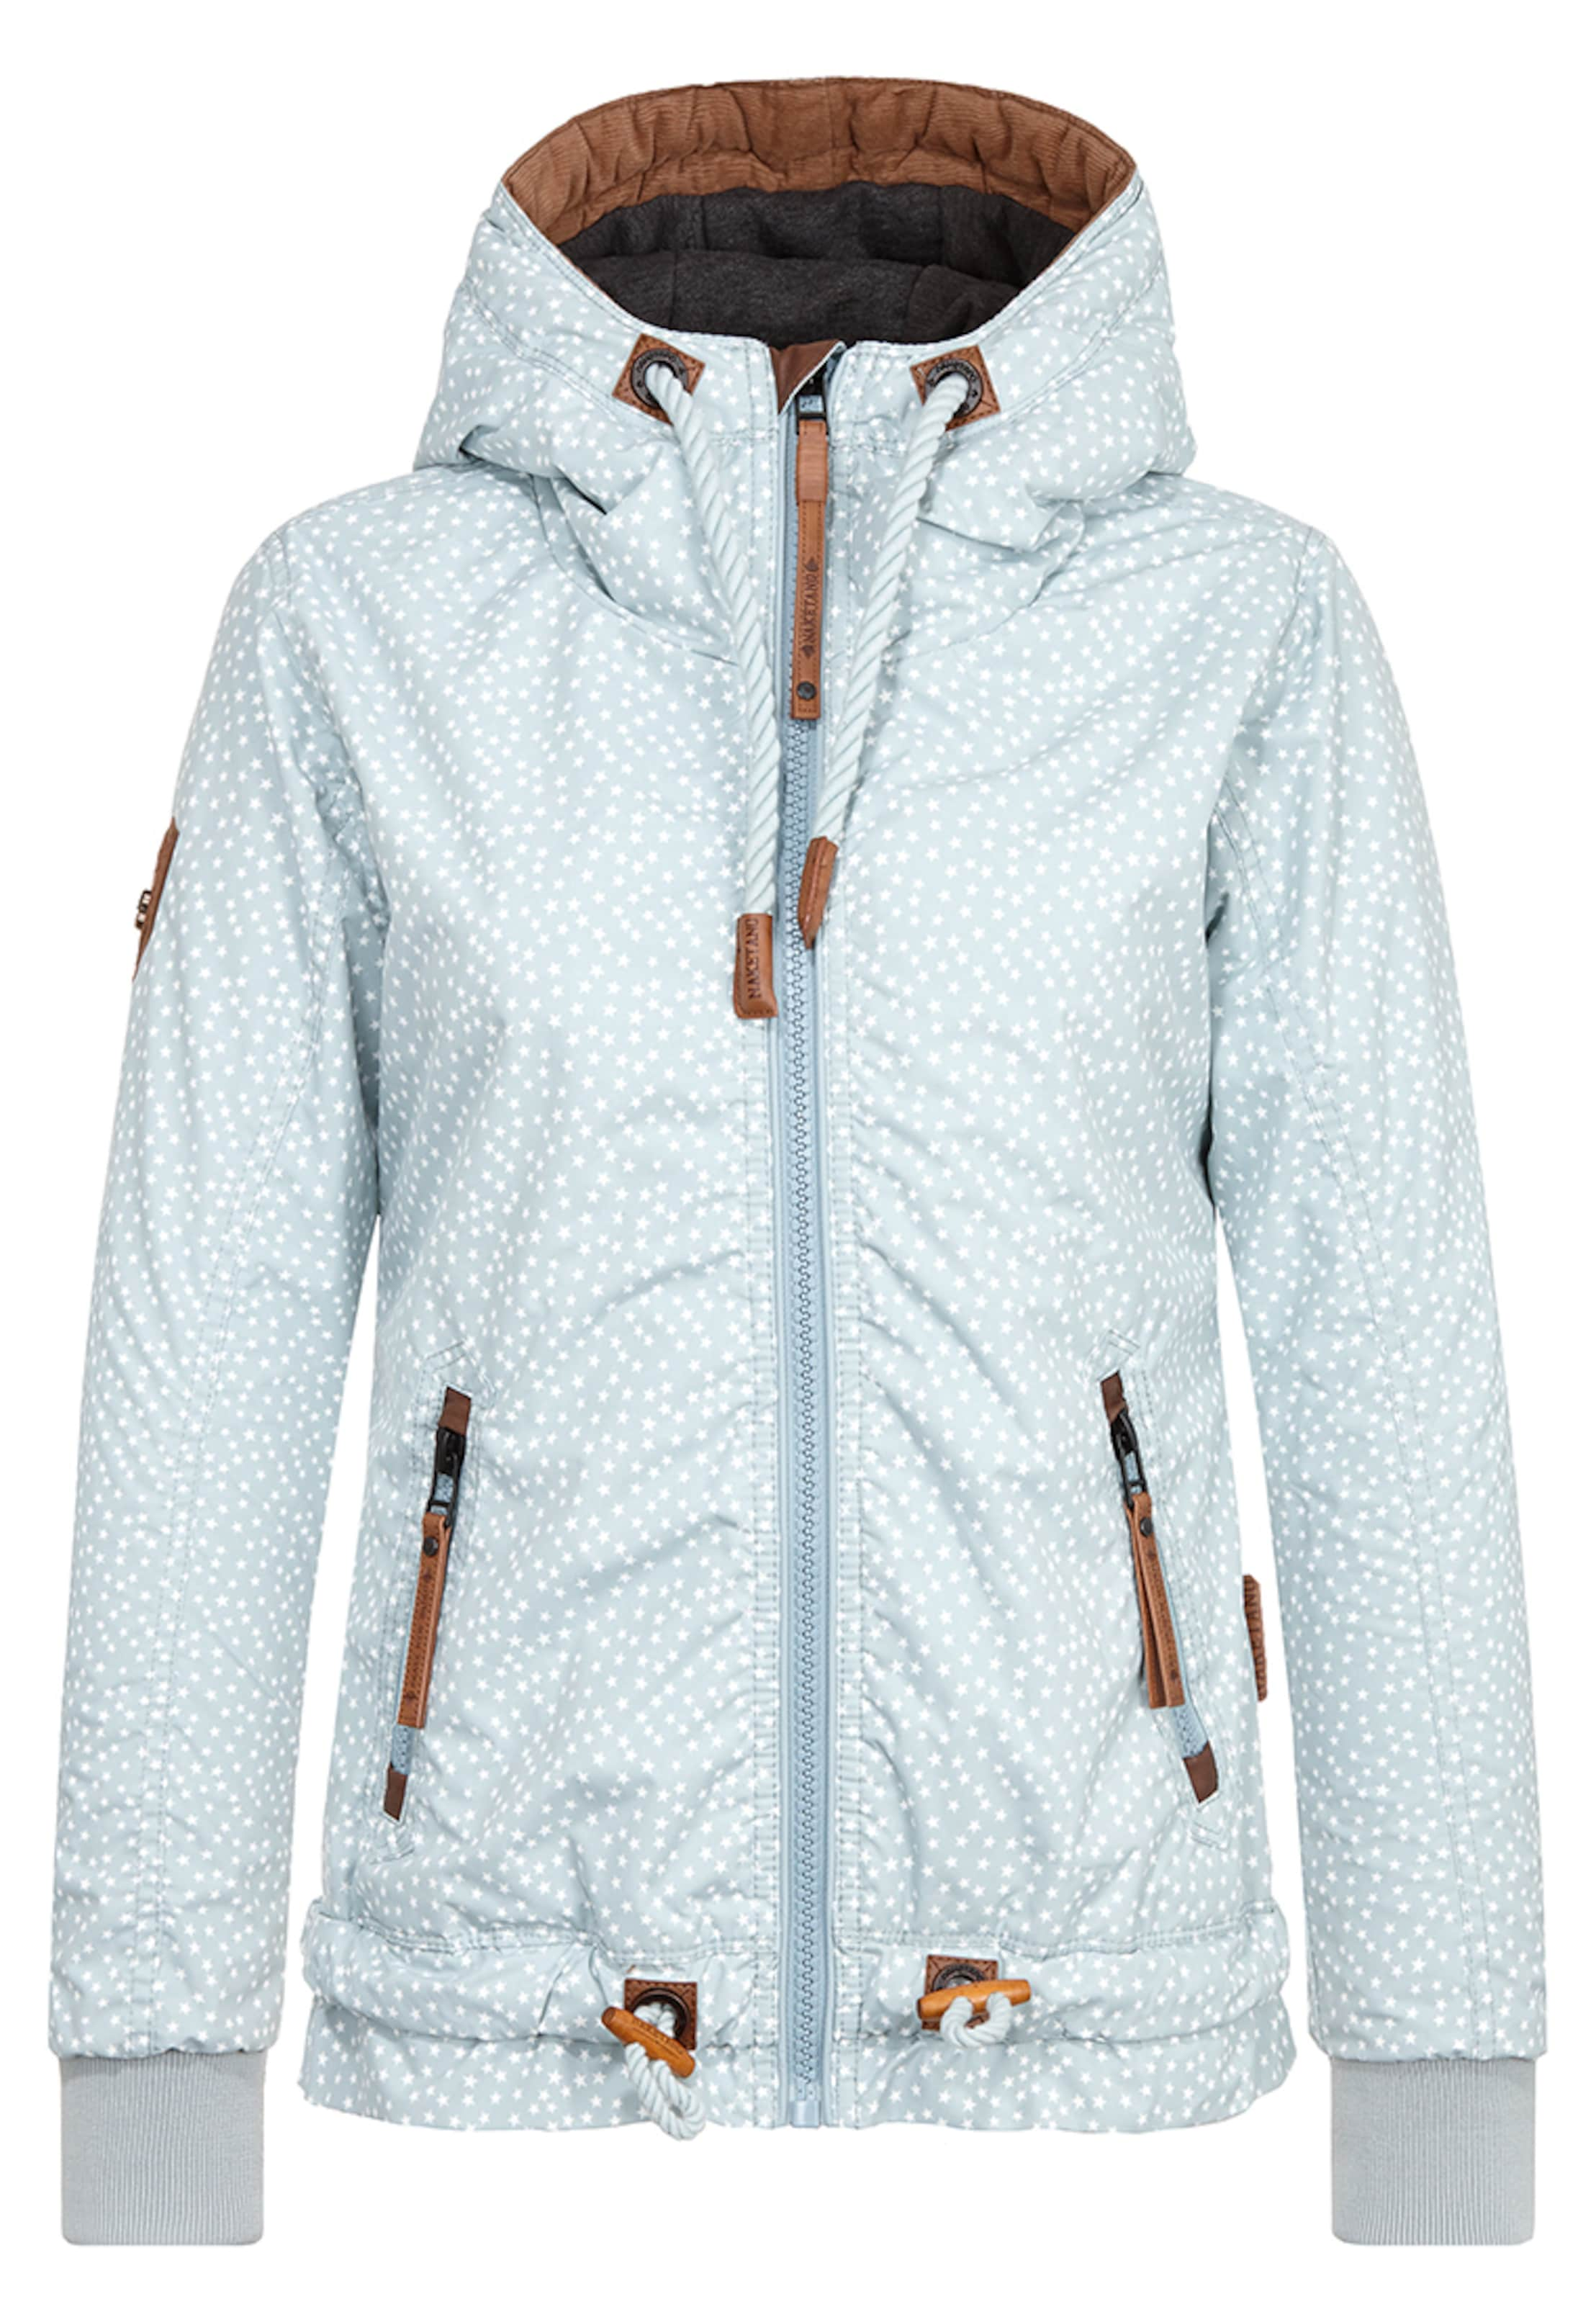 Gleitgelzeit Female naketano Female Jacket naketano XnqBx10wTI